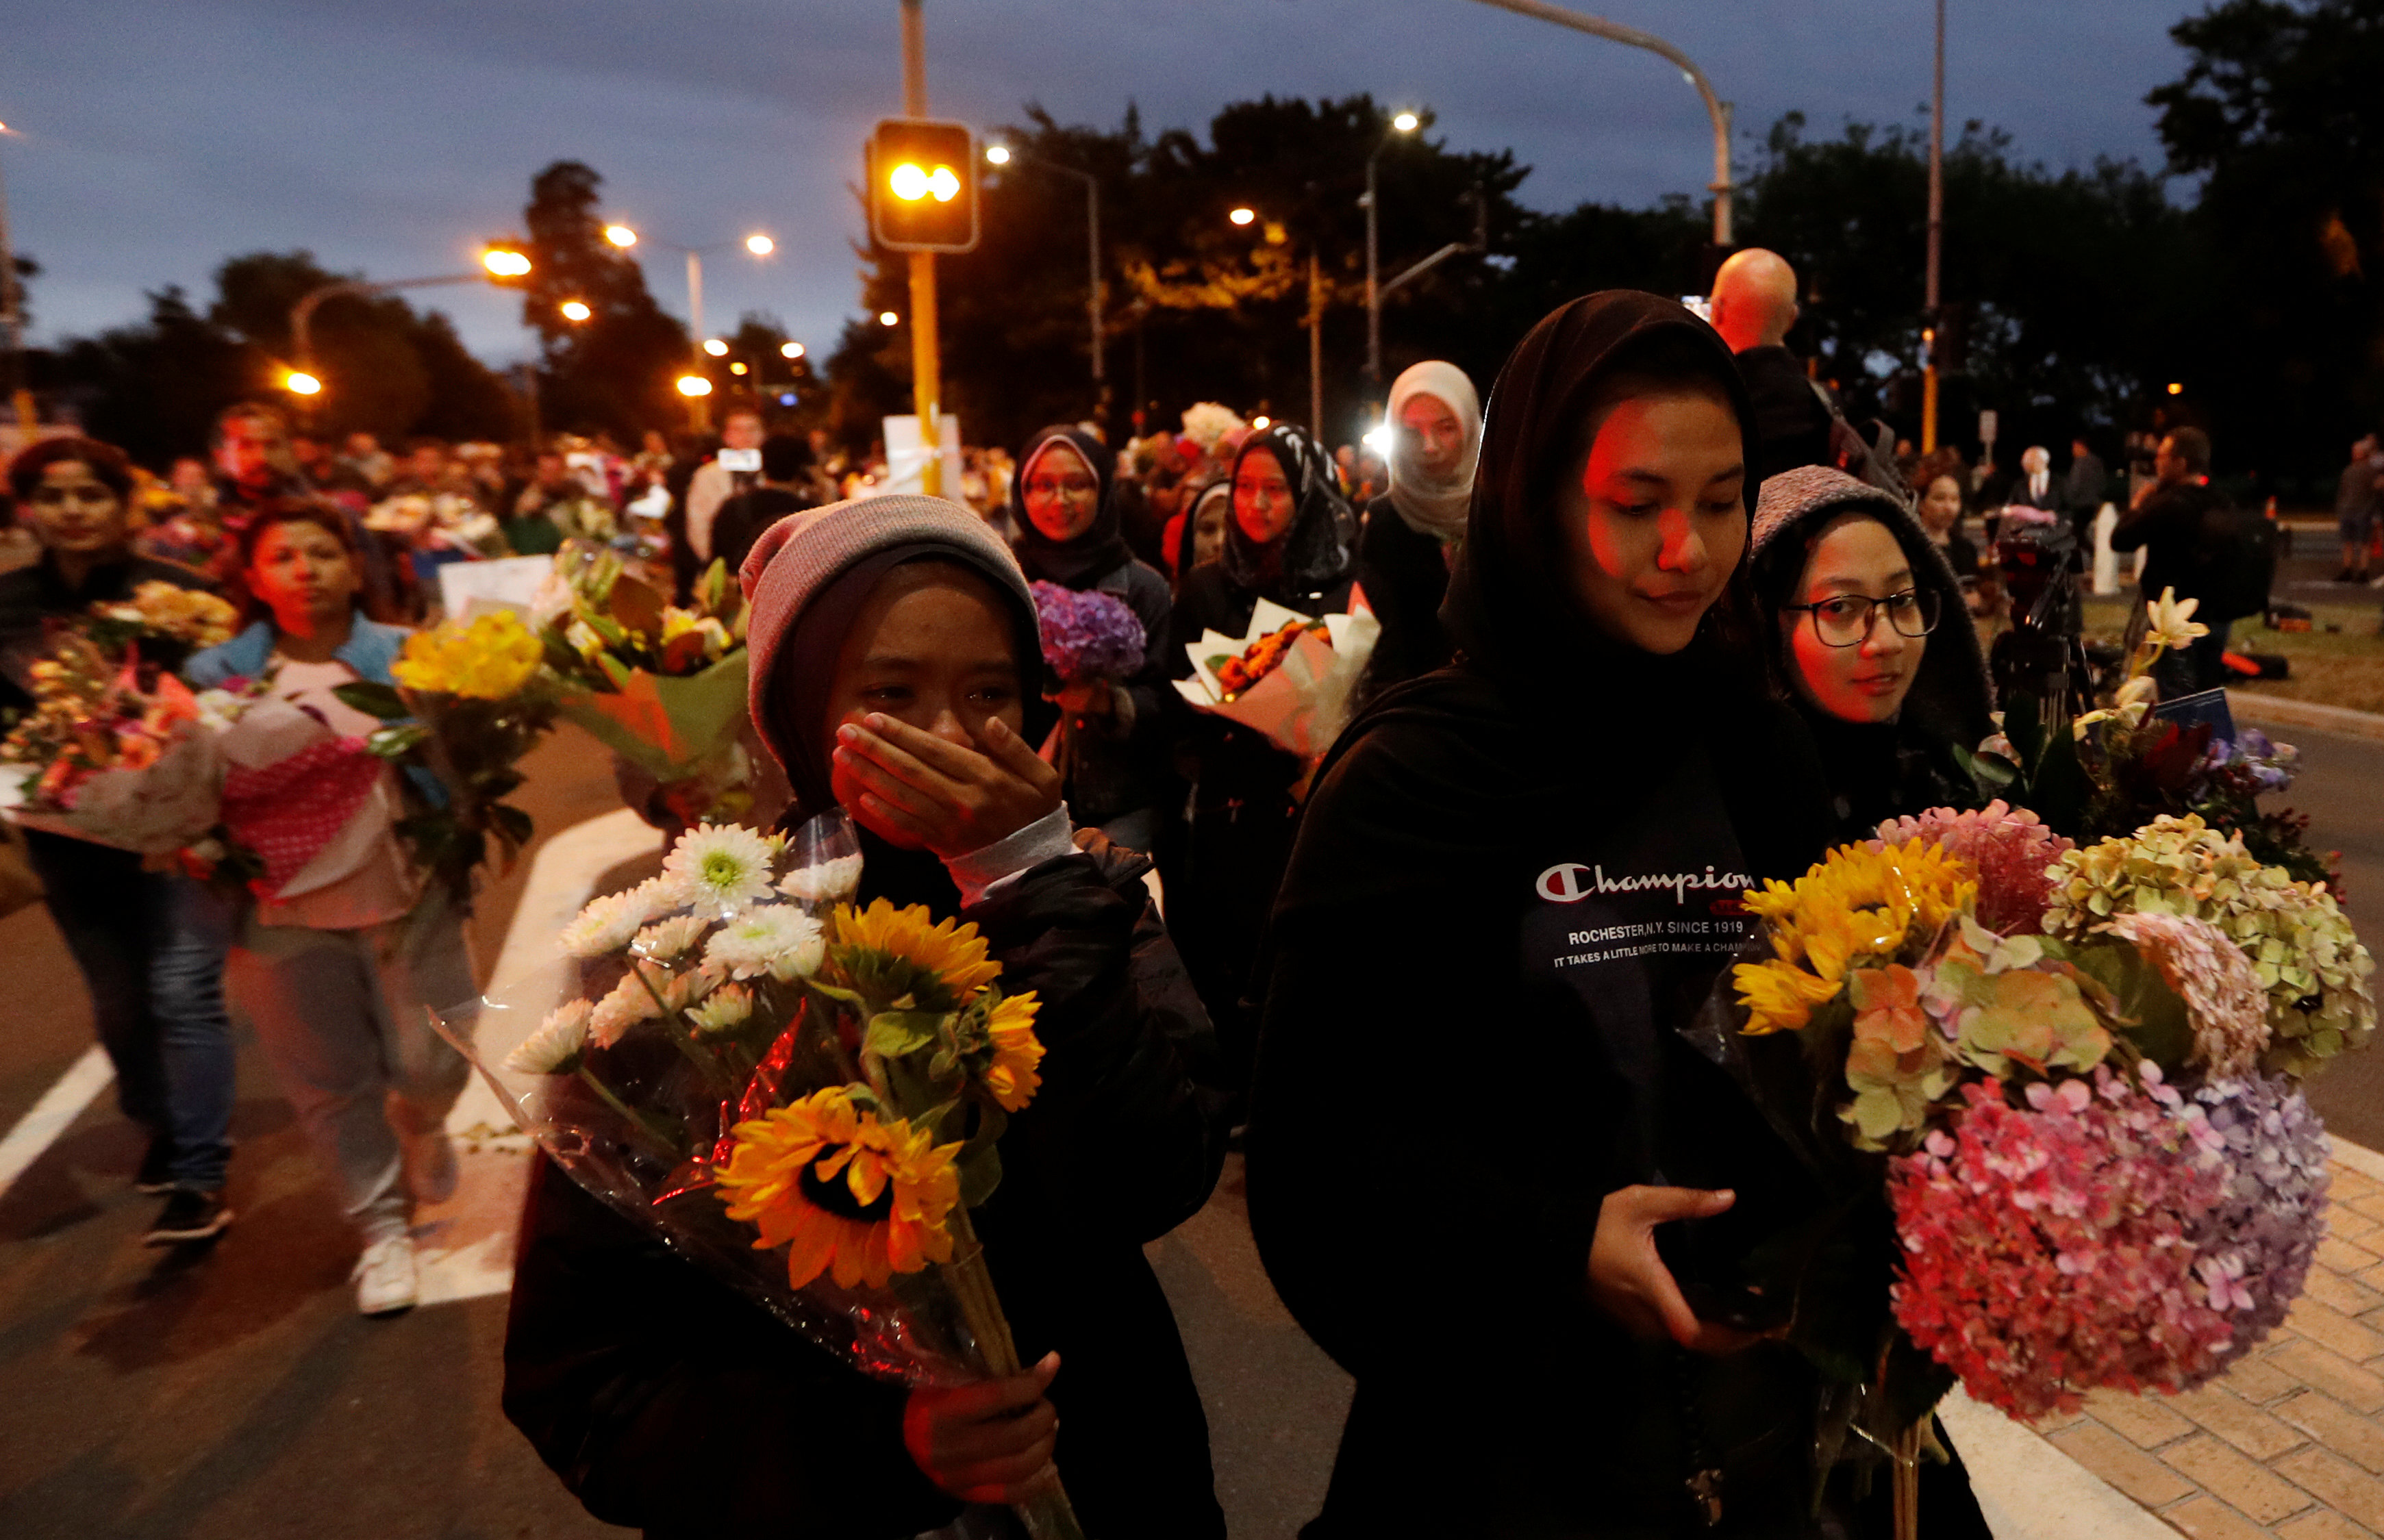 Masjid New Zealand Pinterest: Somalia Calls For 'united Stand Against Terror' After New